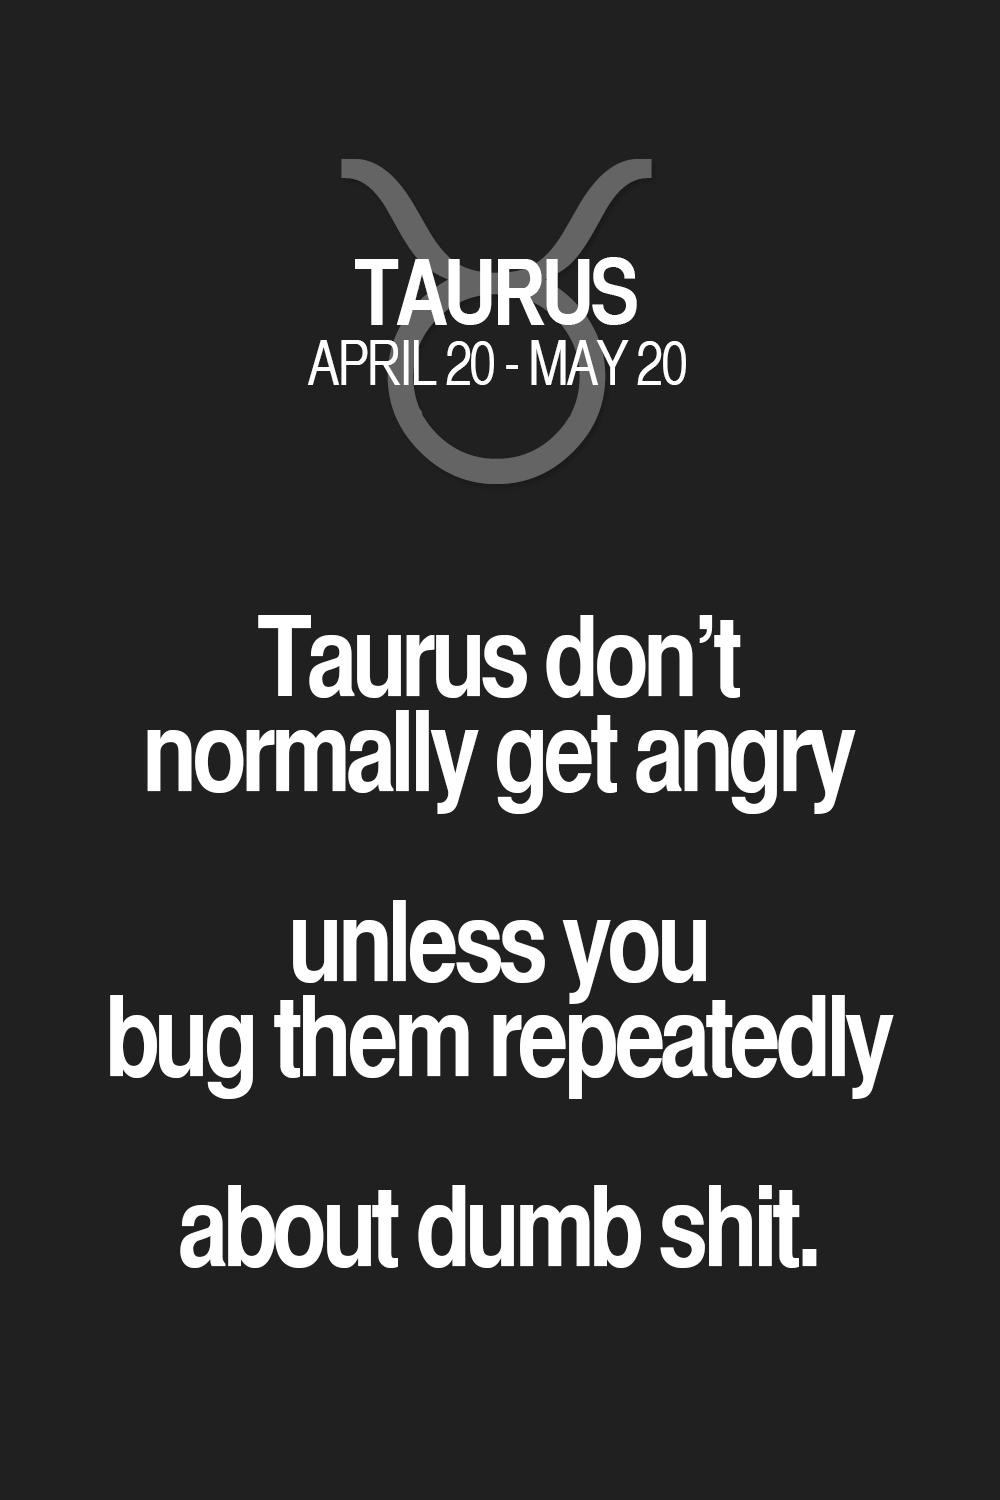 Taurus don't normally get angry unless you bug them repeatedly about